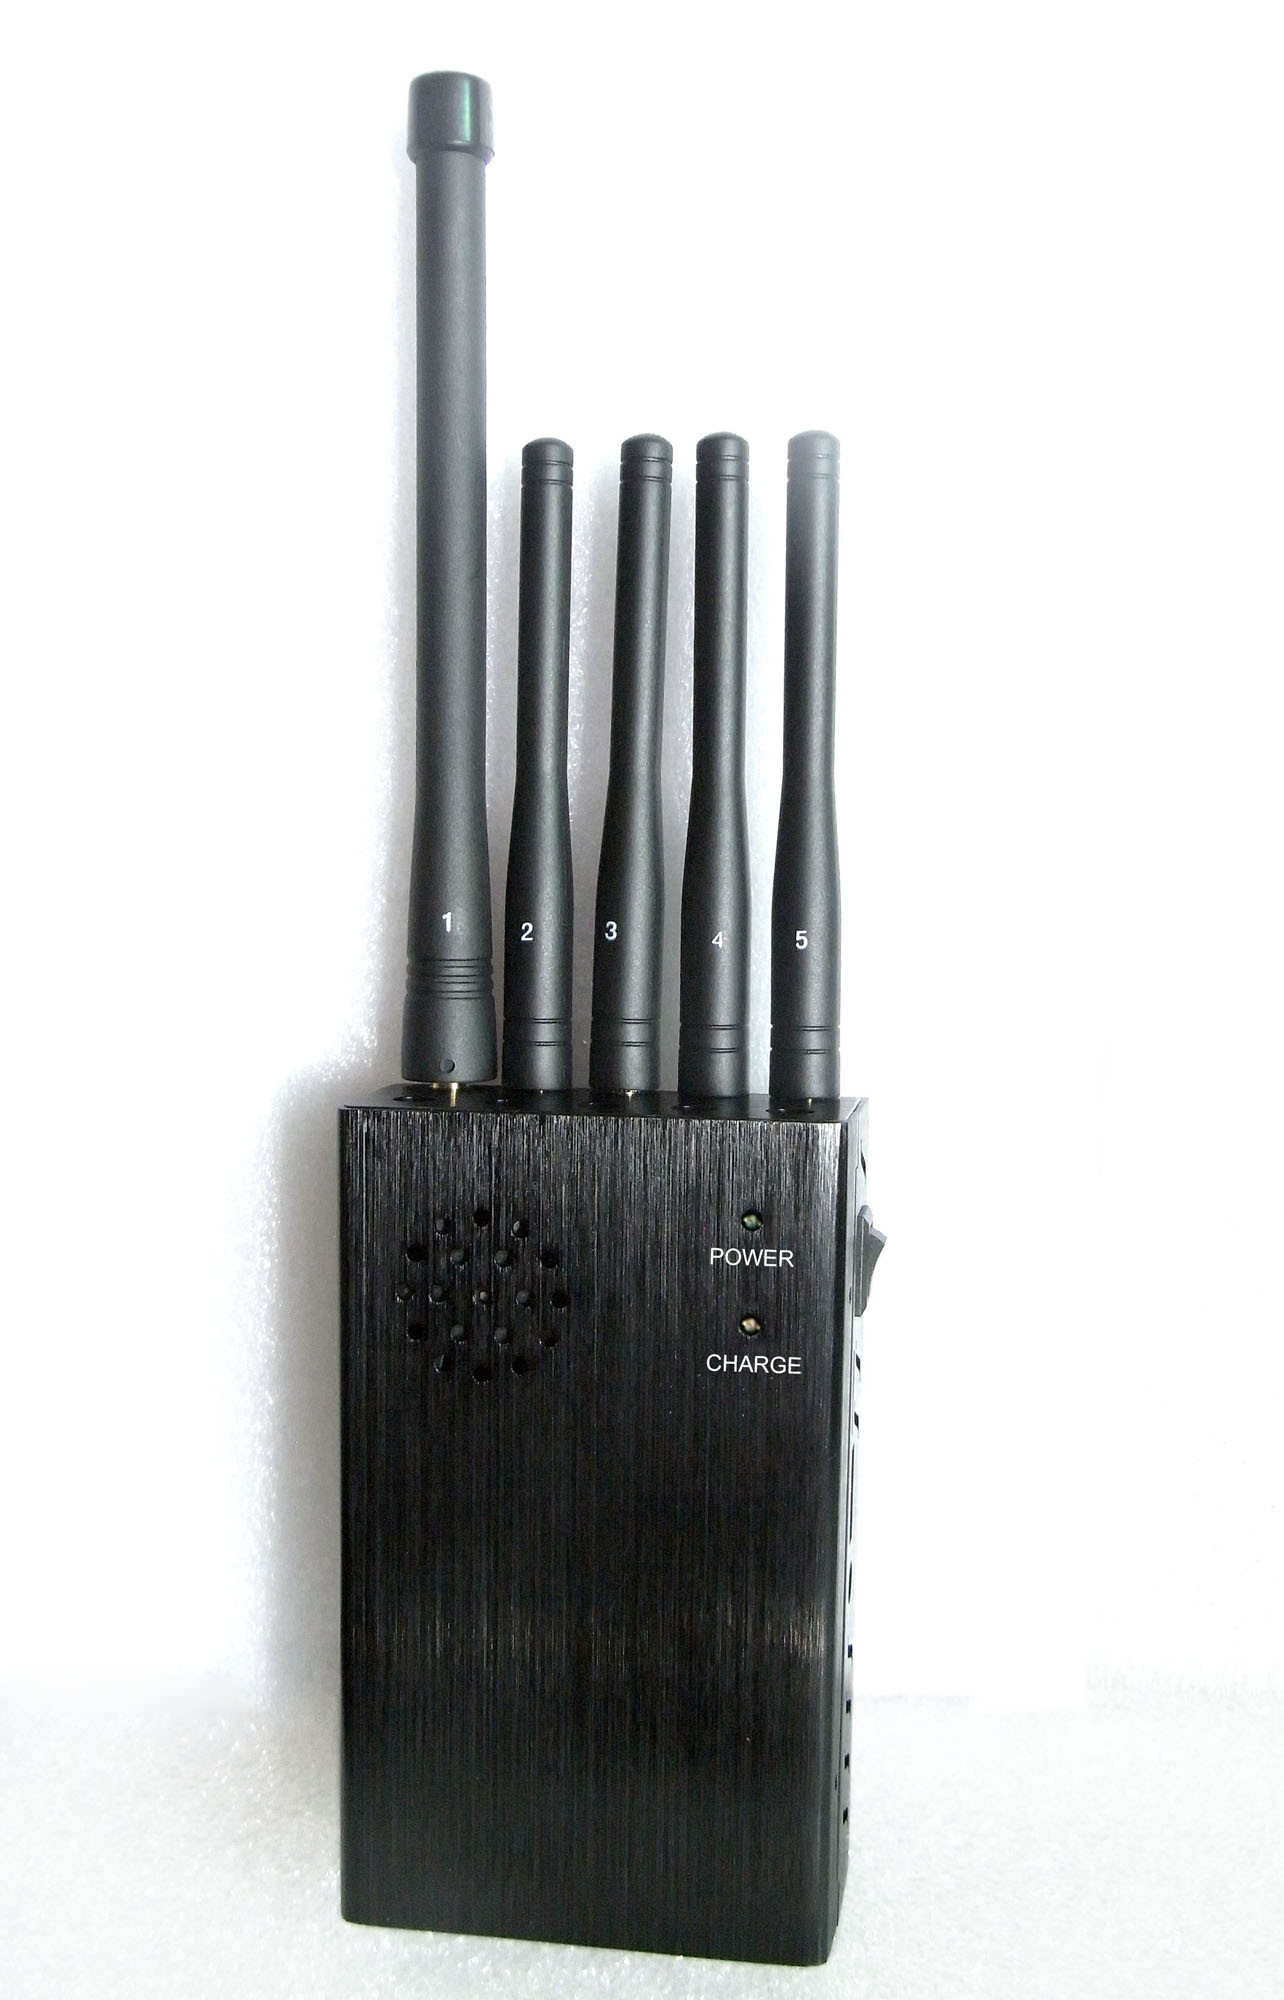 wholesale gps signal jammer joint